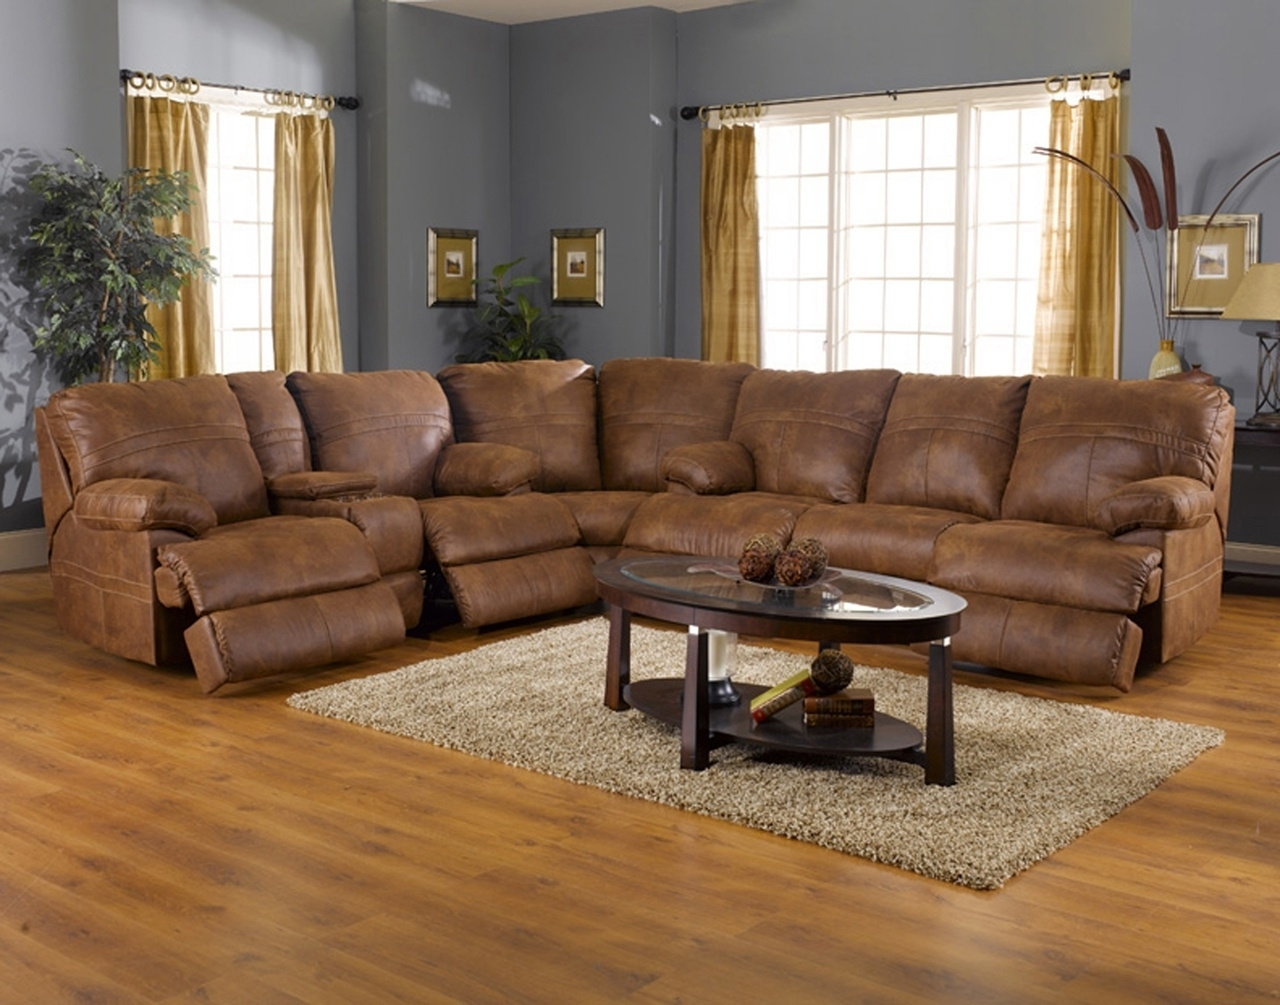 Sectional Sofas With Recliners Leather Inside Famous Elegant Leather Sectional Sofa With Recliner 89 Office Sofa Ideas (View 13 of 20)